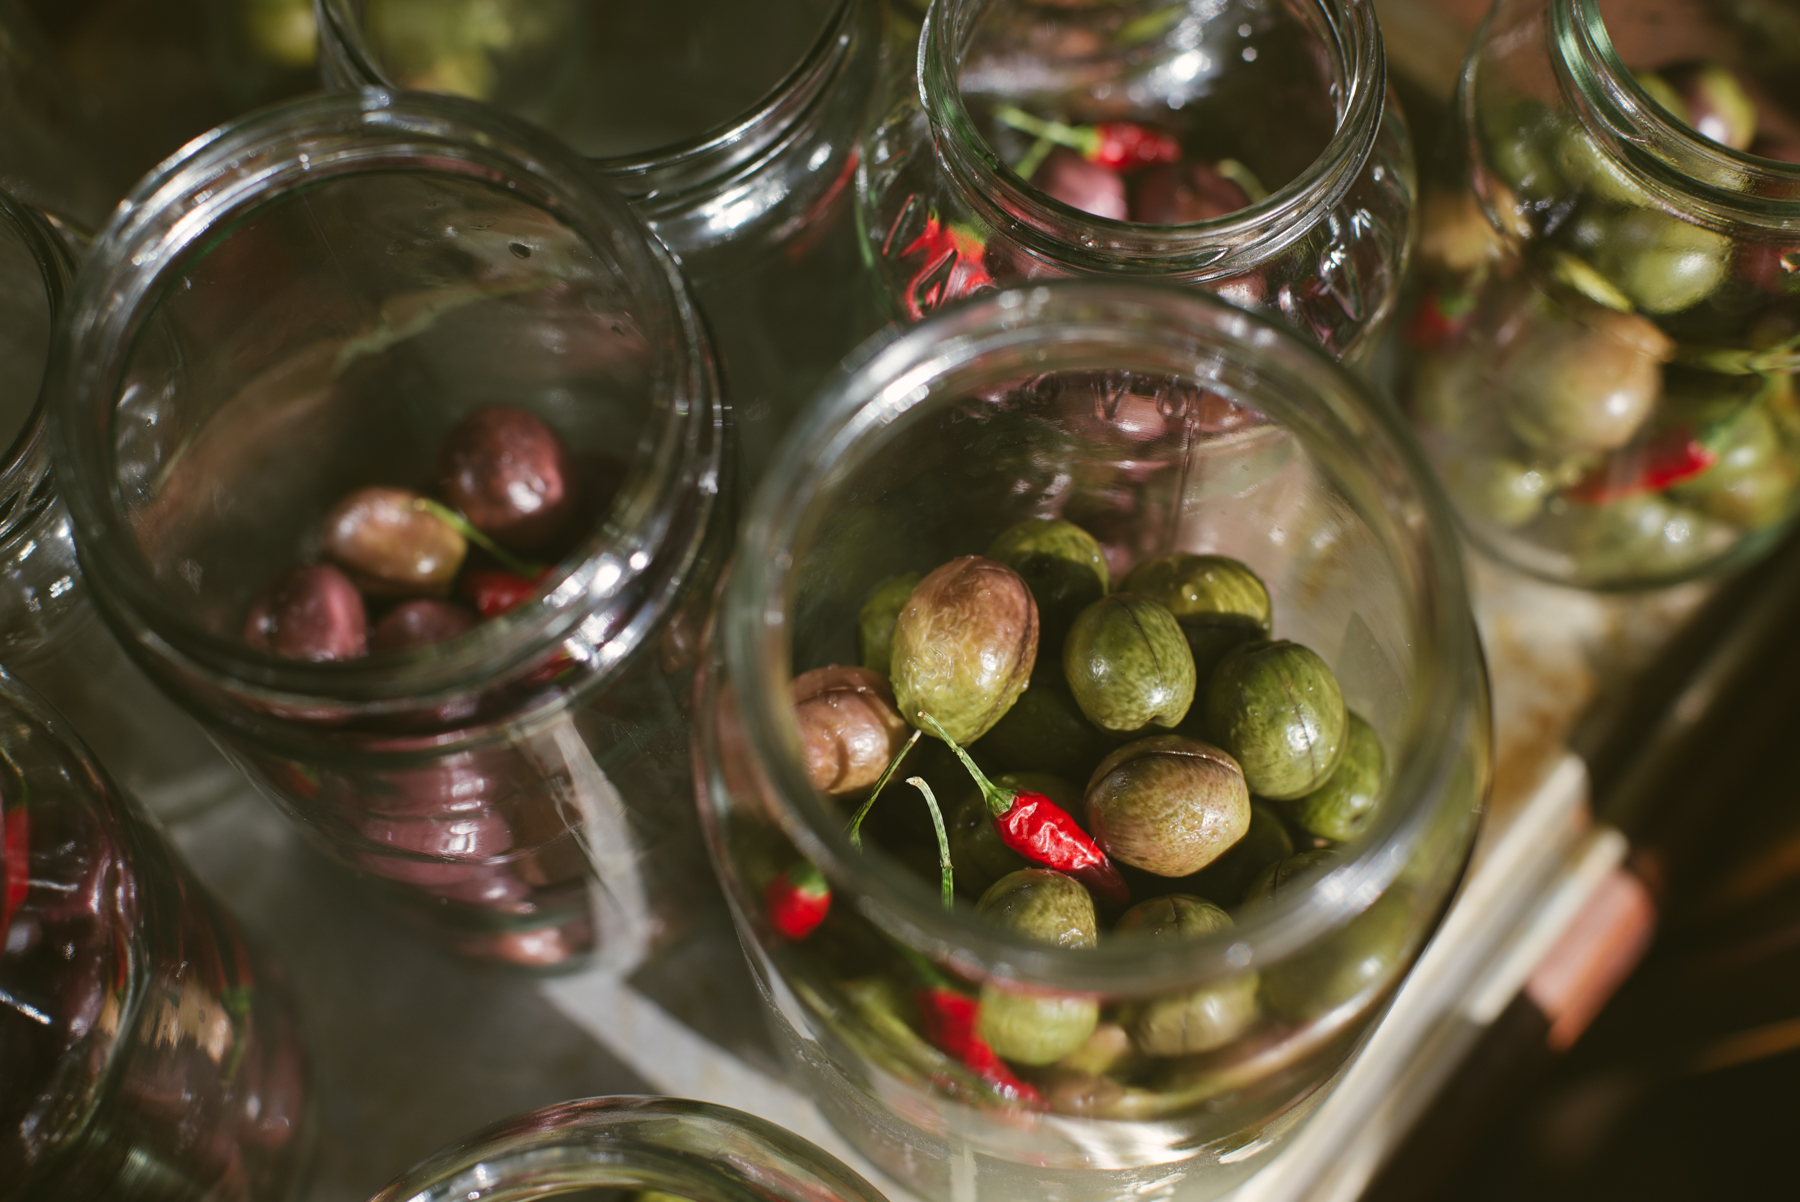 We filled half the jars, then added chillies, oregano and garlic (which Eunice kindly ran out to IGA to get).